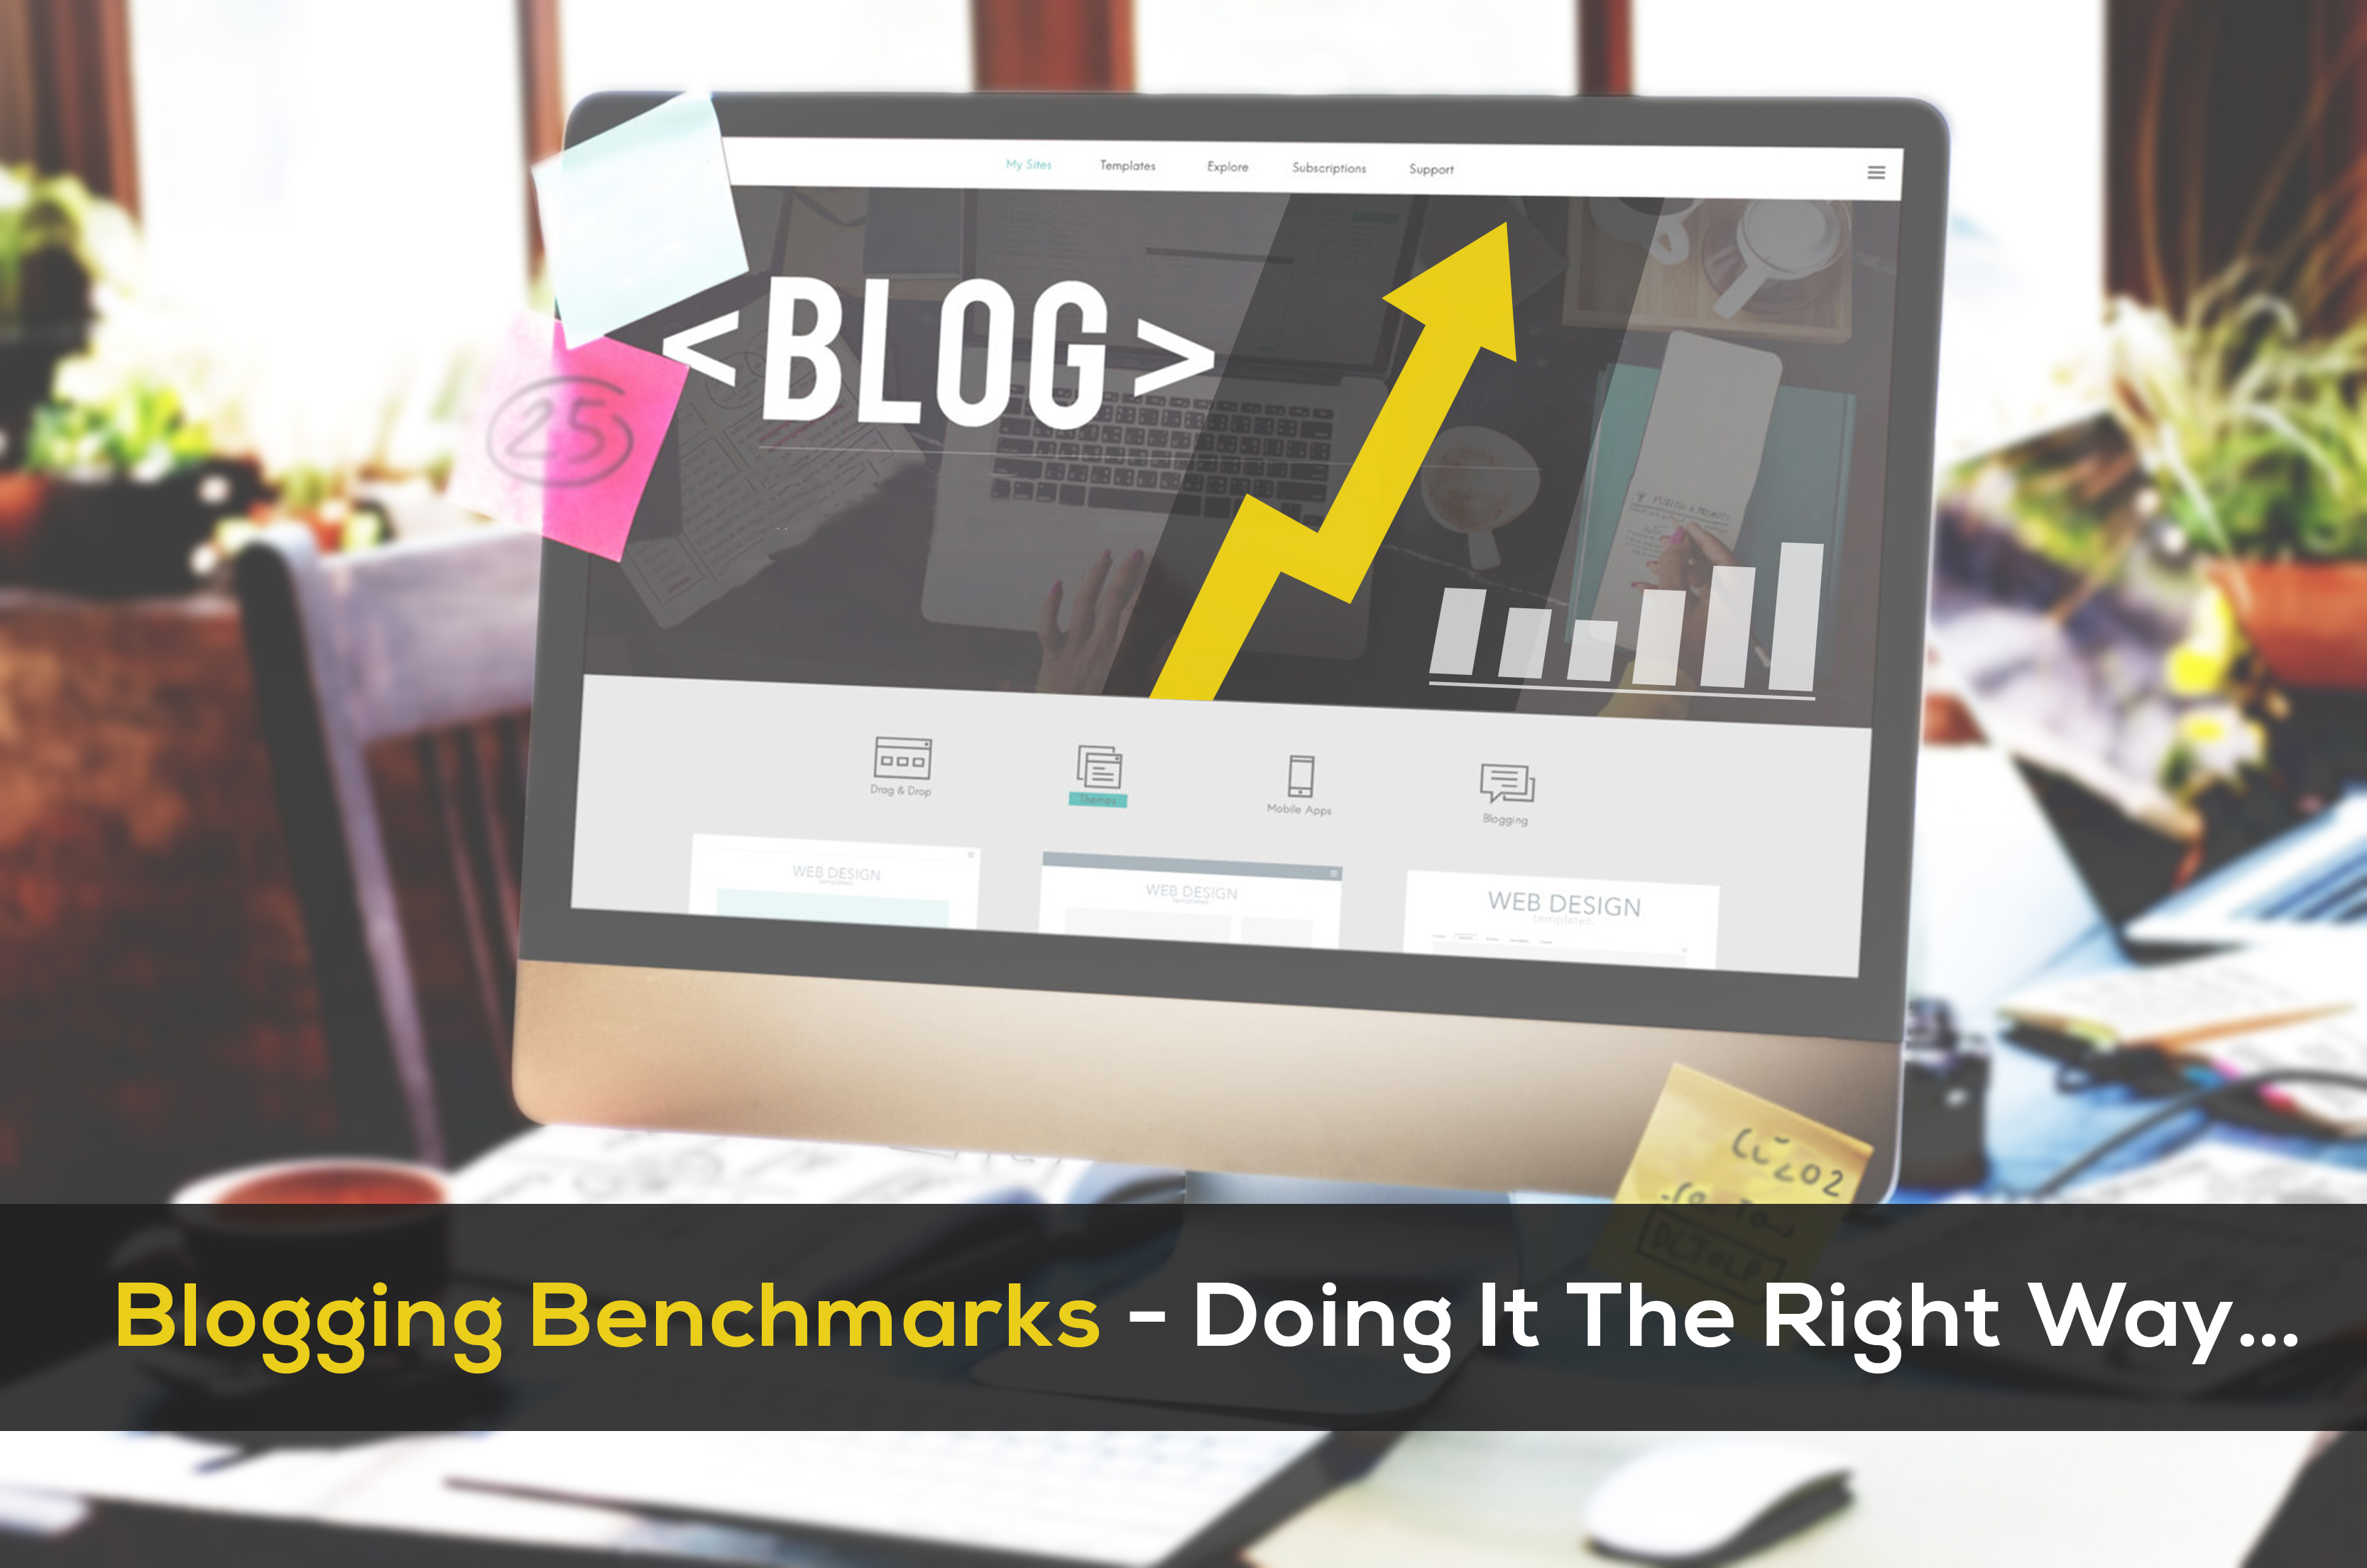 Blogging Benchmarks